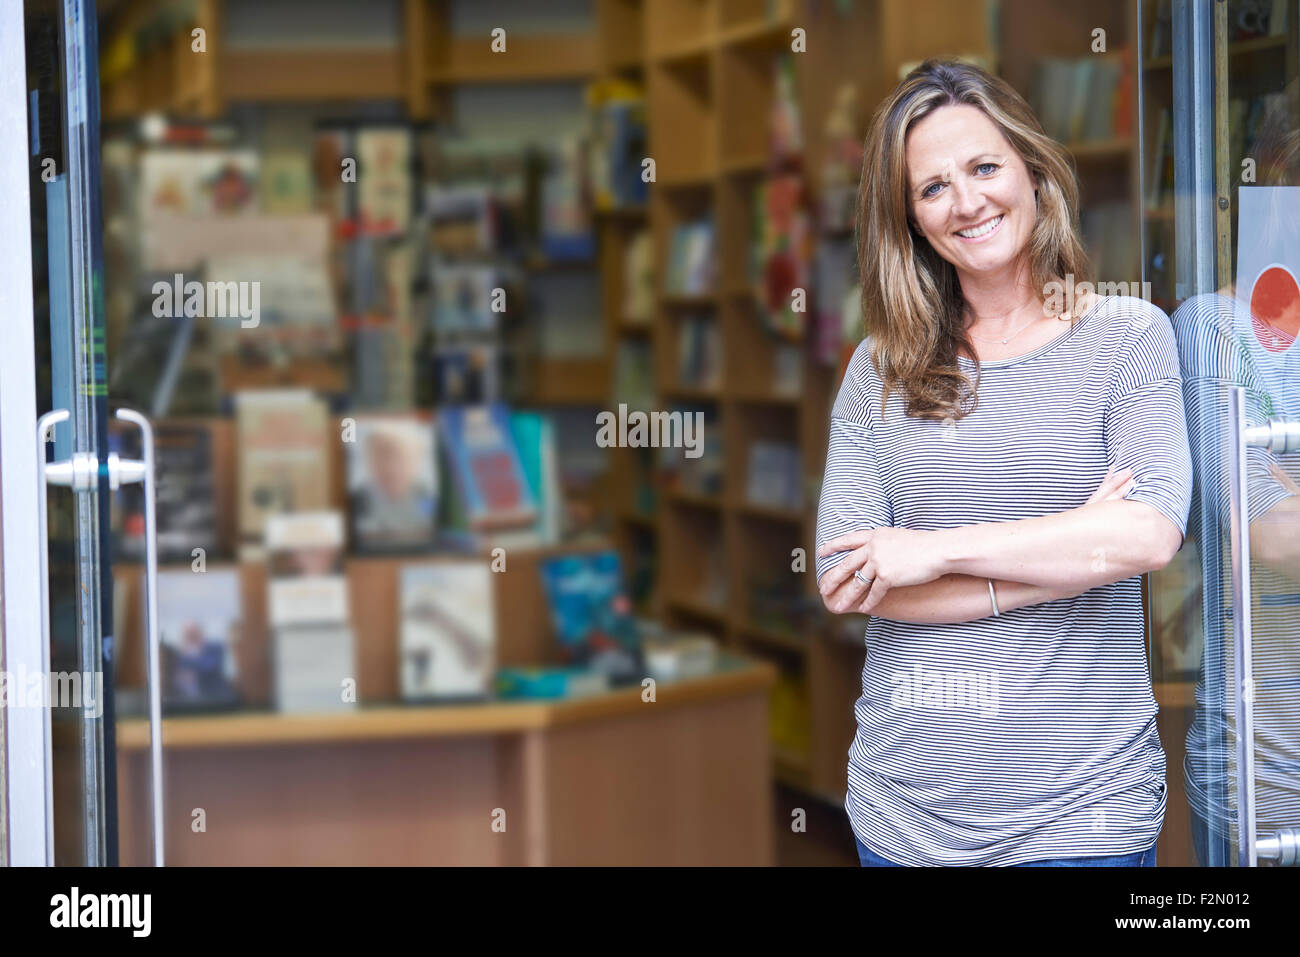 Portrait Of Female Bookshop Owner Outside Store - Stock Image